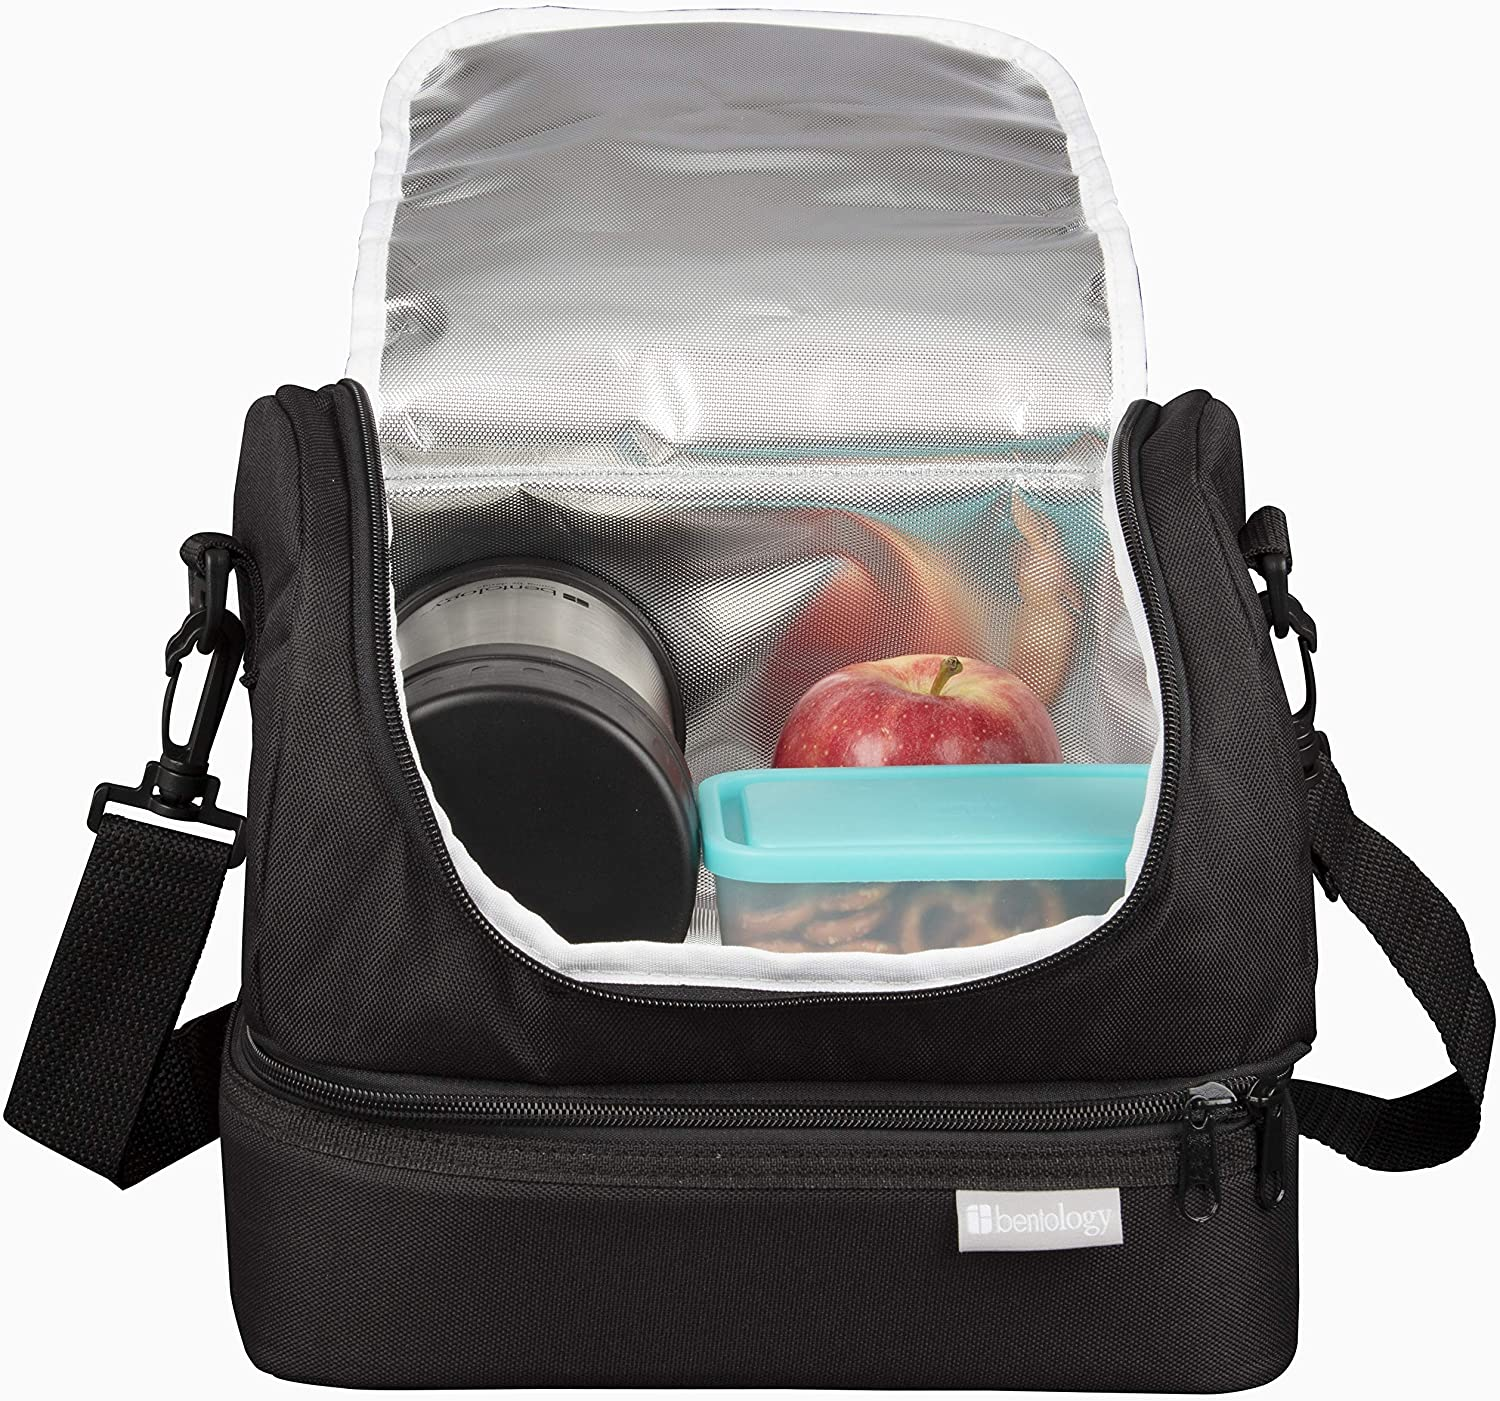 Insulated Lunch Box - Dual Compartment Lunchbox Bag Tote with Zipper Closure - Black